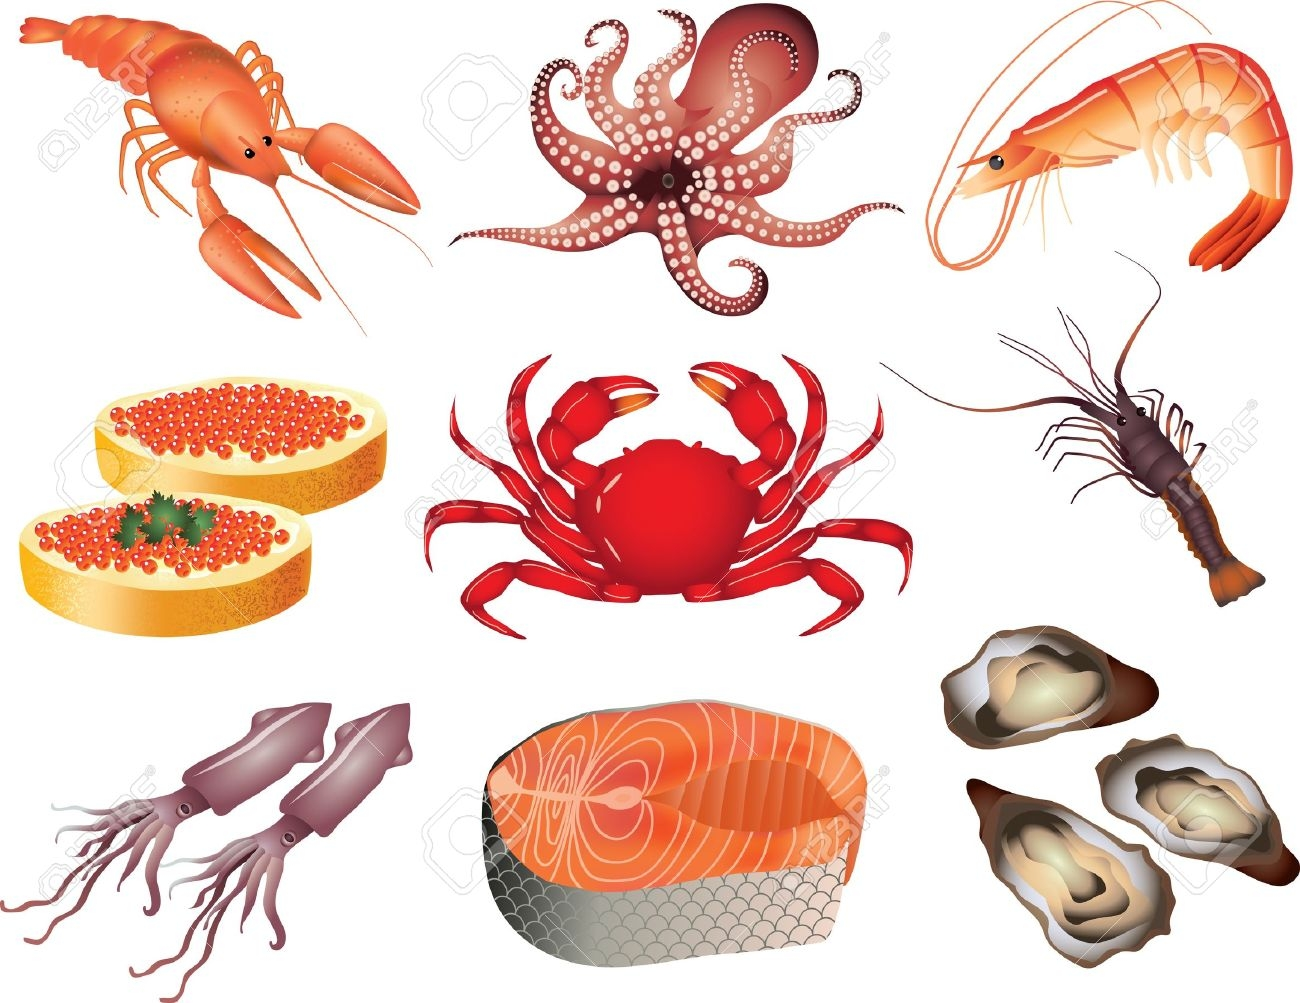 Seafood pictures clipart jpg stock Seafood clipart Elegant Seafood clipart vector Pencil and in ... jpg stock